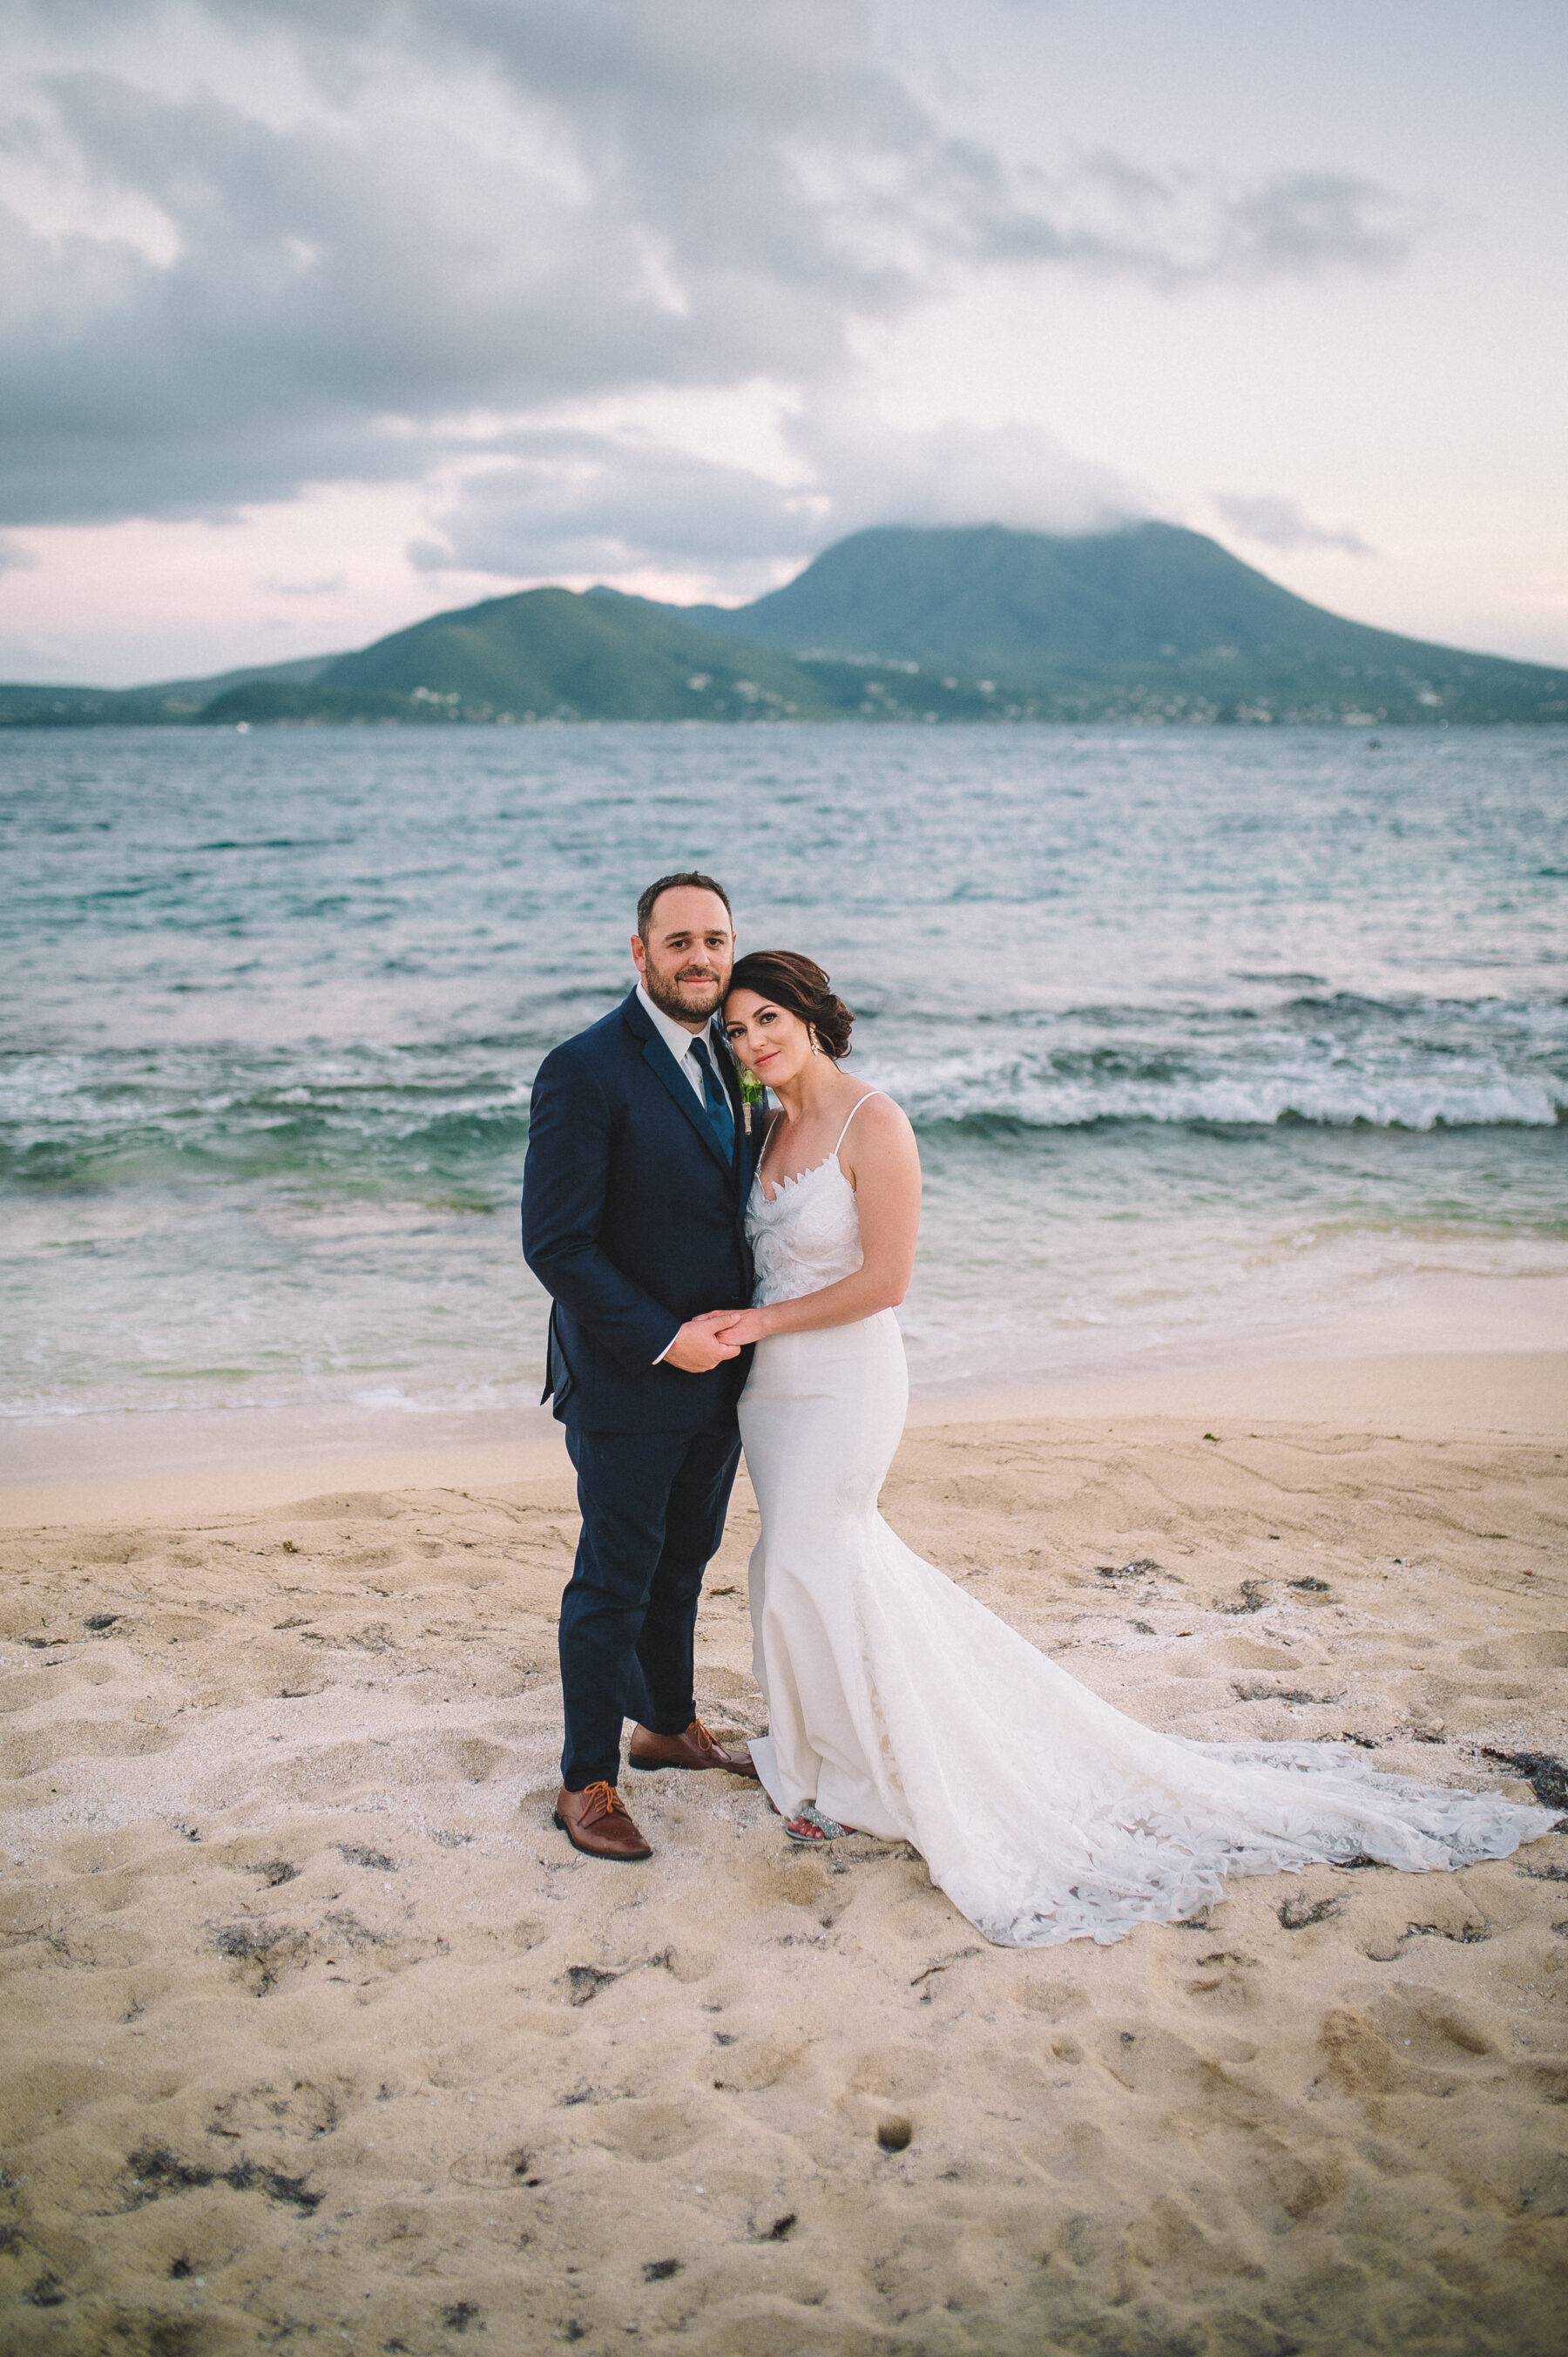 Caribbean Sea wedding photo: Intimate Caribbean Wedding by Details Nashville